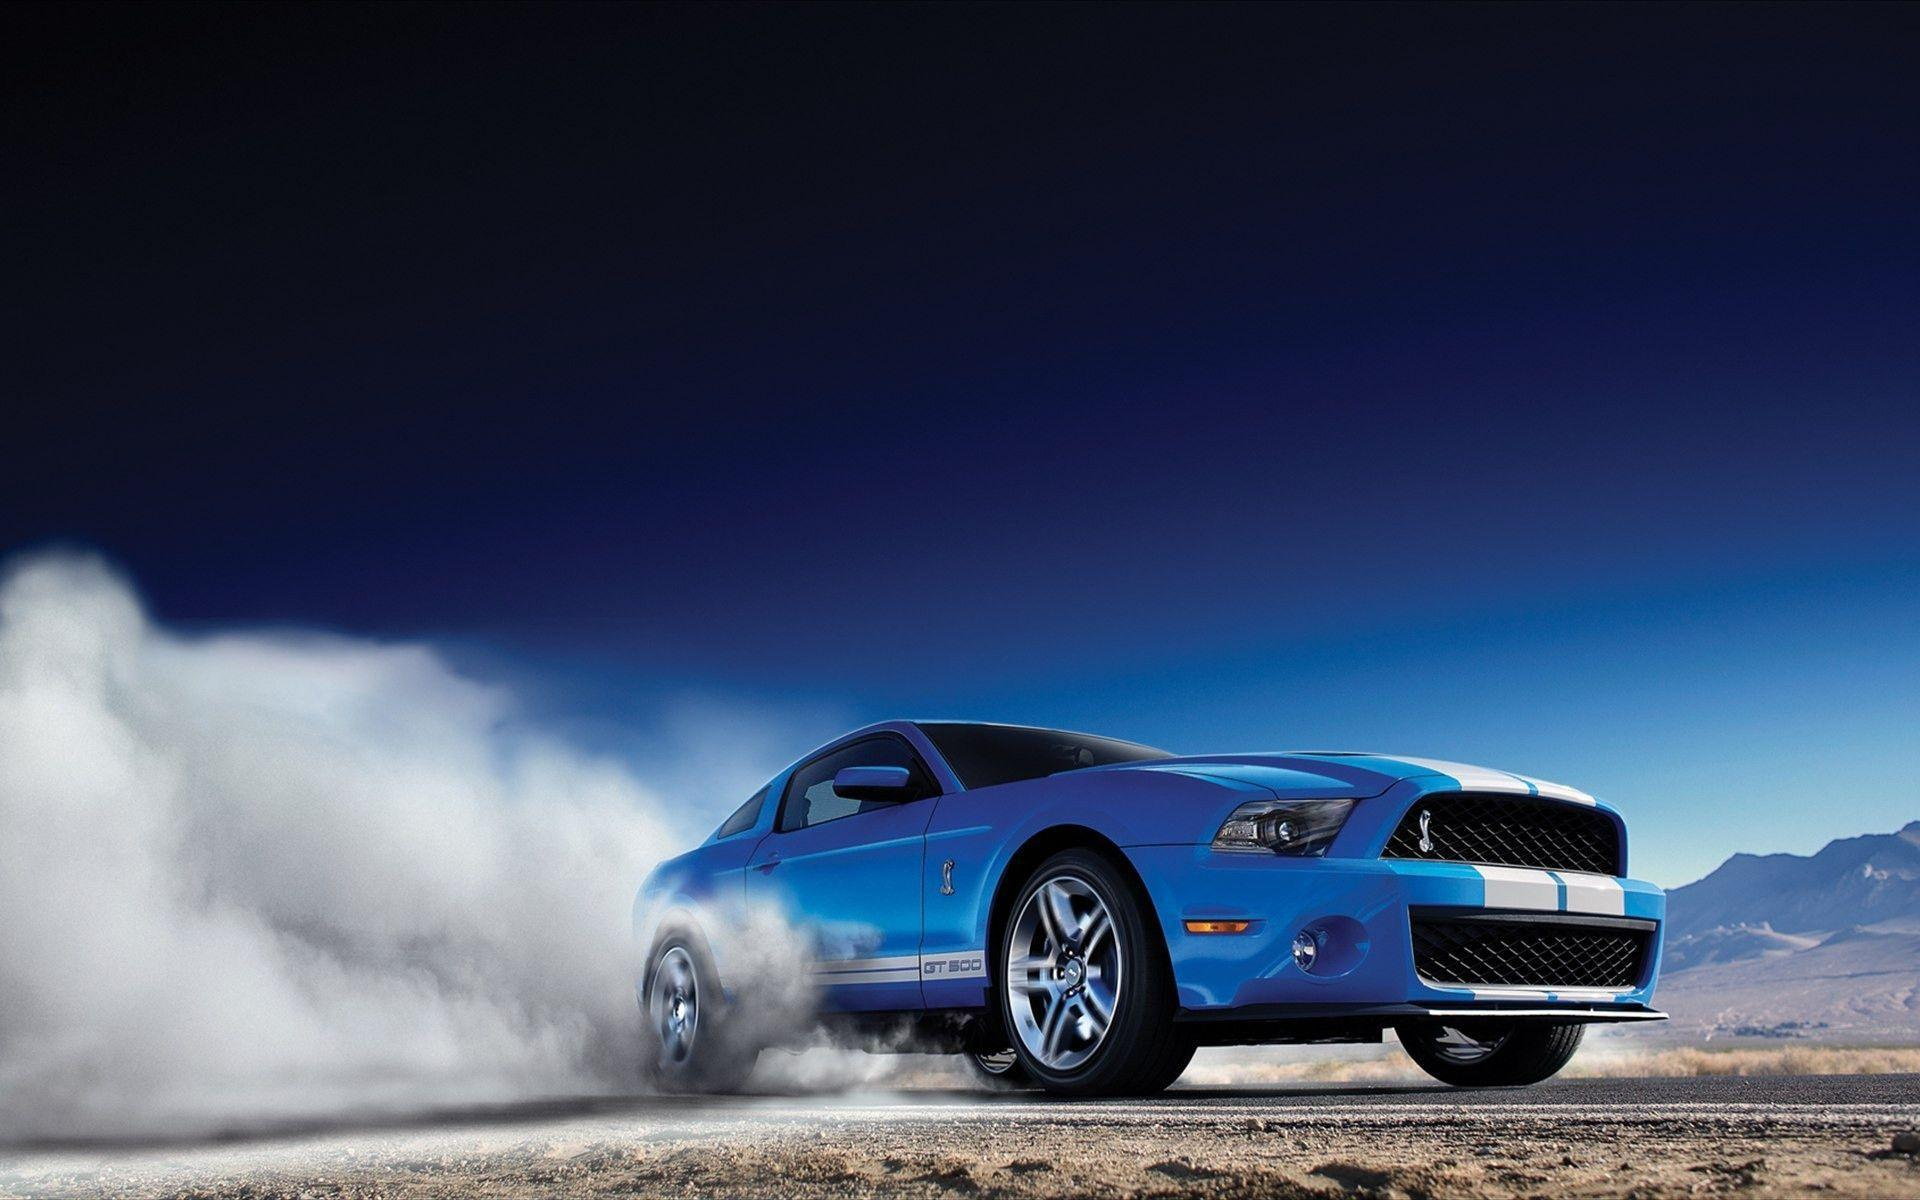 Shelby Gt500 Wallpapers - Full HD wallpaper search